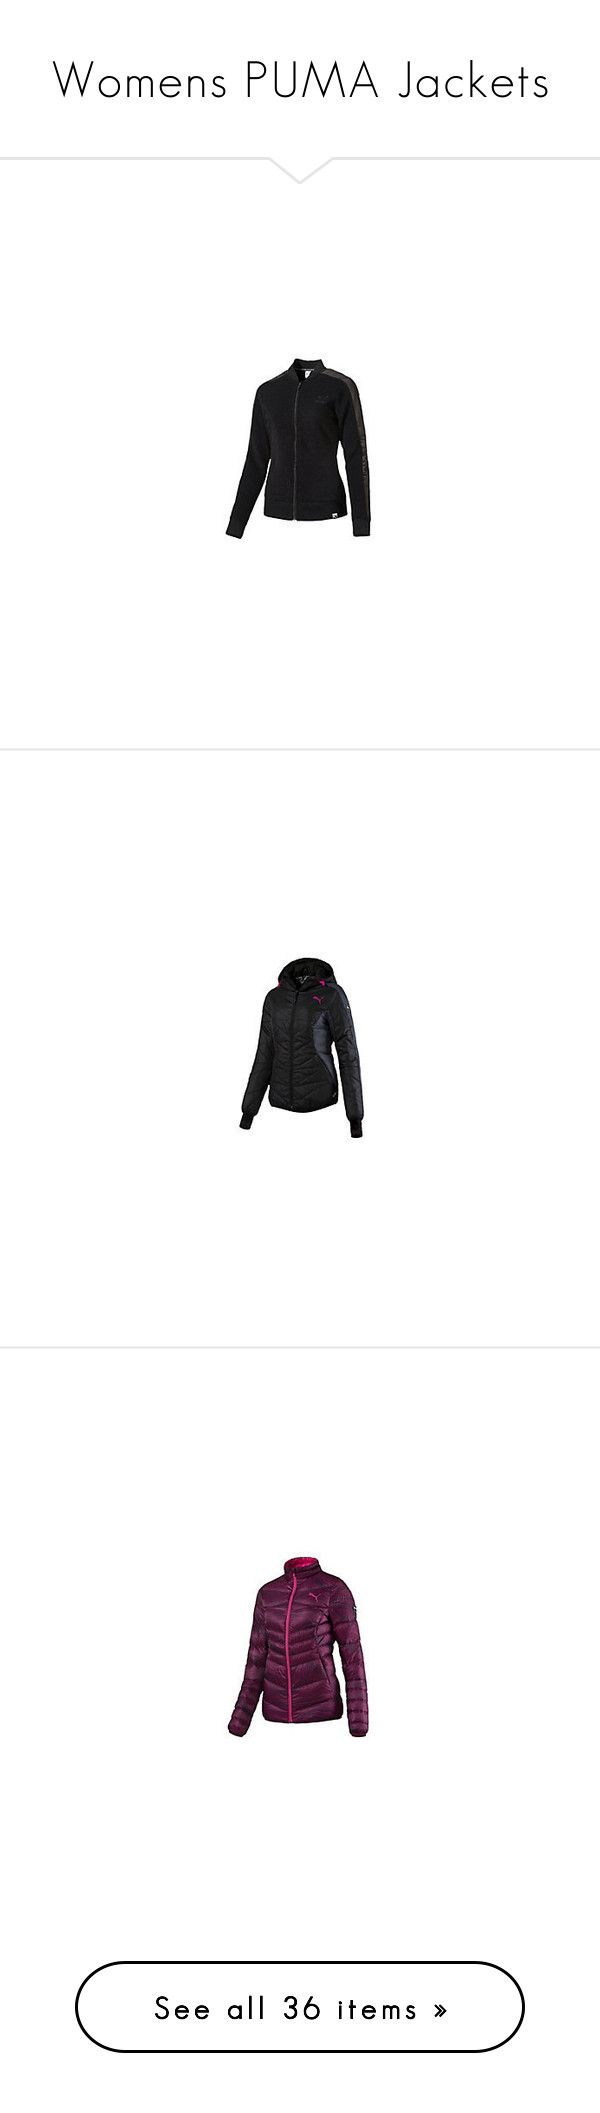 """Womens PUMA Jackets"" by tynabrookler ❤ liked on Polyvore featuring activewear, activewear jackets, outerwear, jackets and coats"